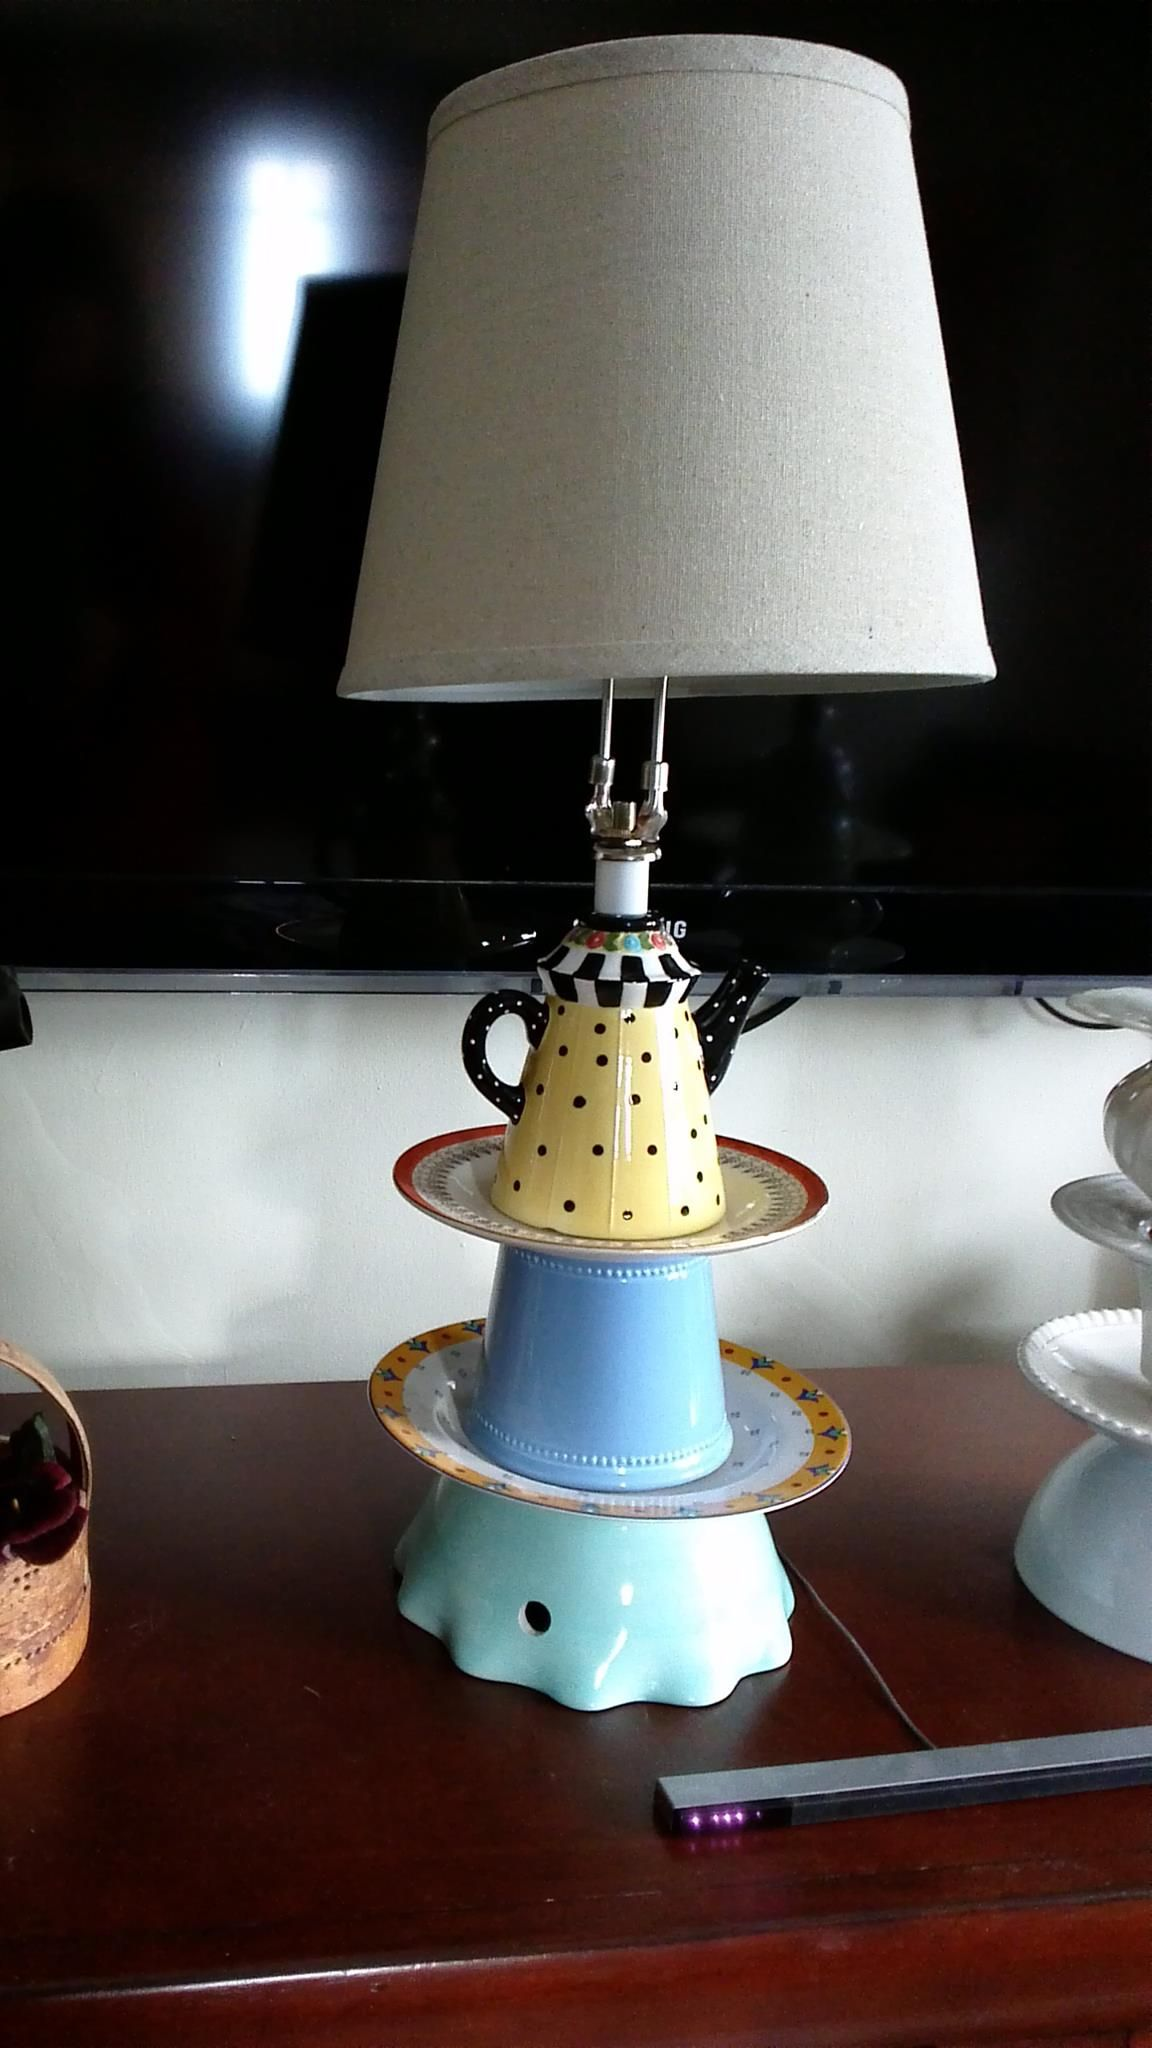 A lamp i made from thrift store objects and assorted lamp parts a lamp i made from thrift store objects and assorted lamp parts mozeypictures Image collections